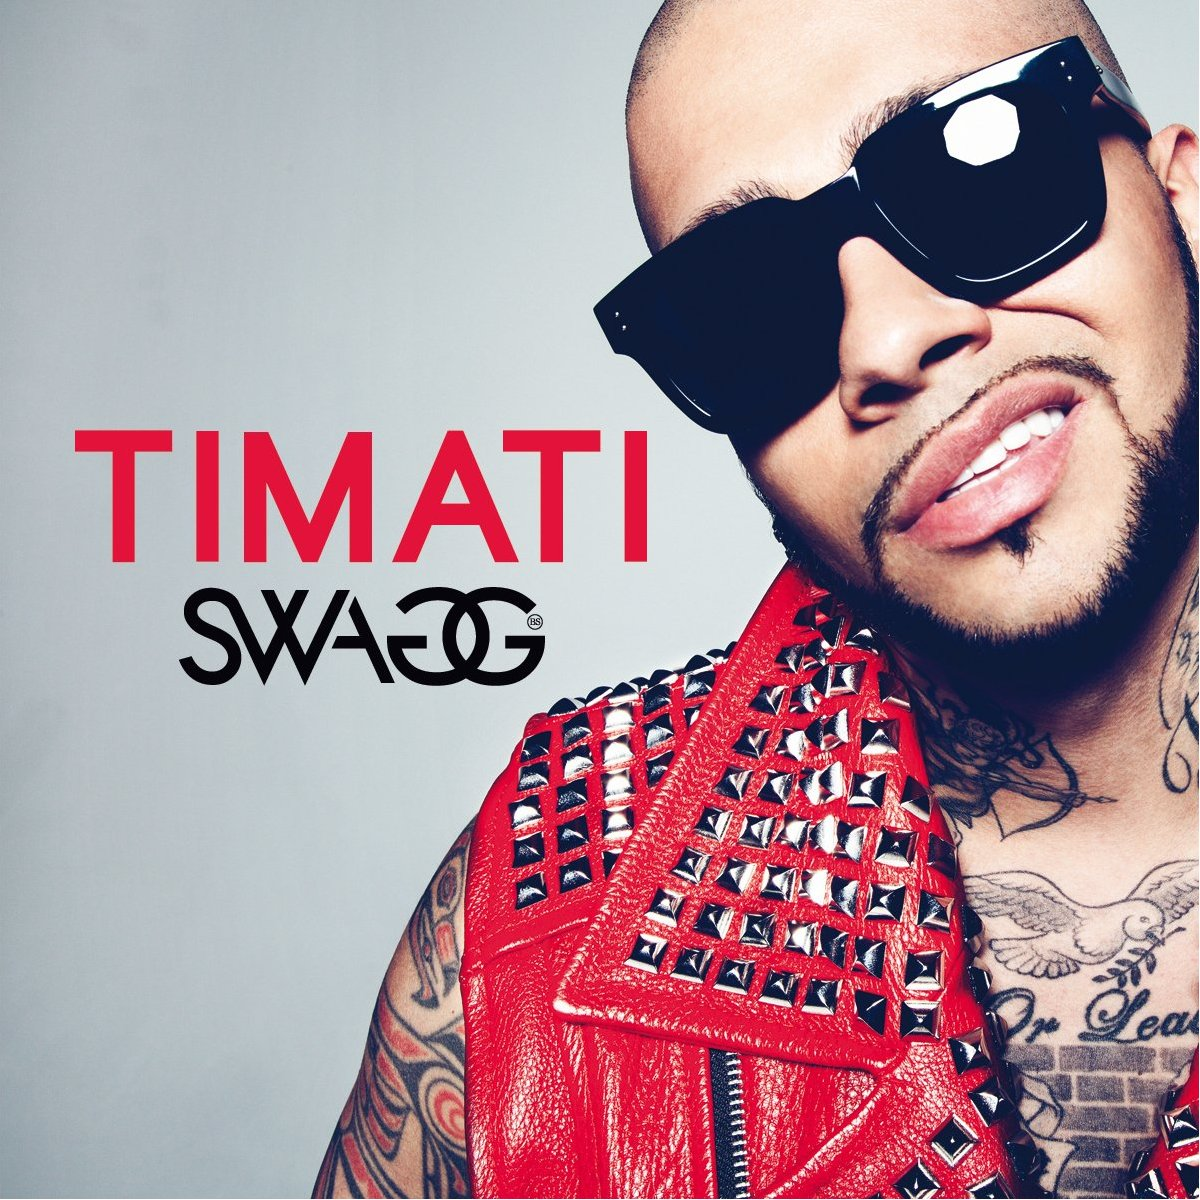 Timati - Swagg (2012) [Deluxe Edition] double CD